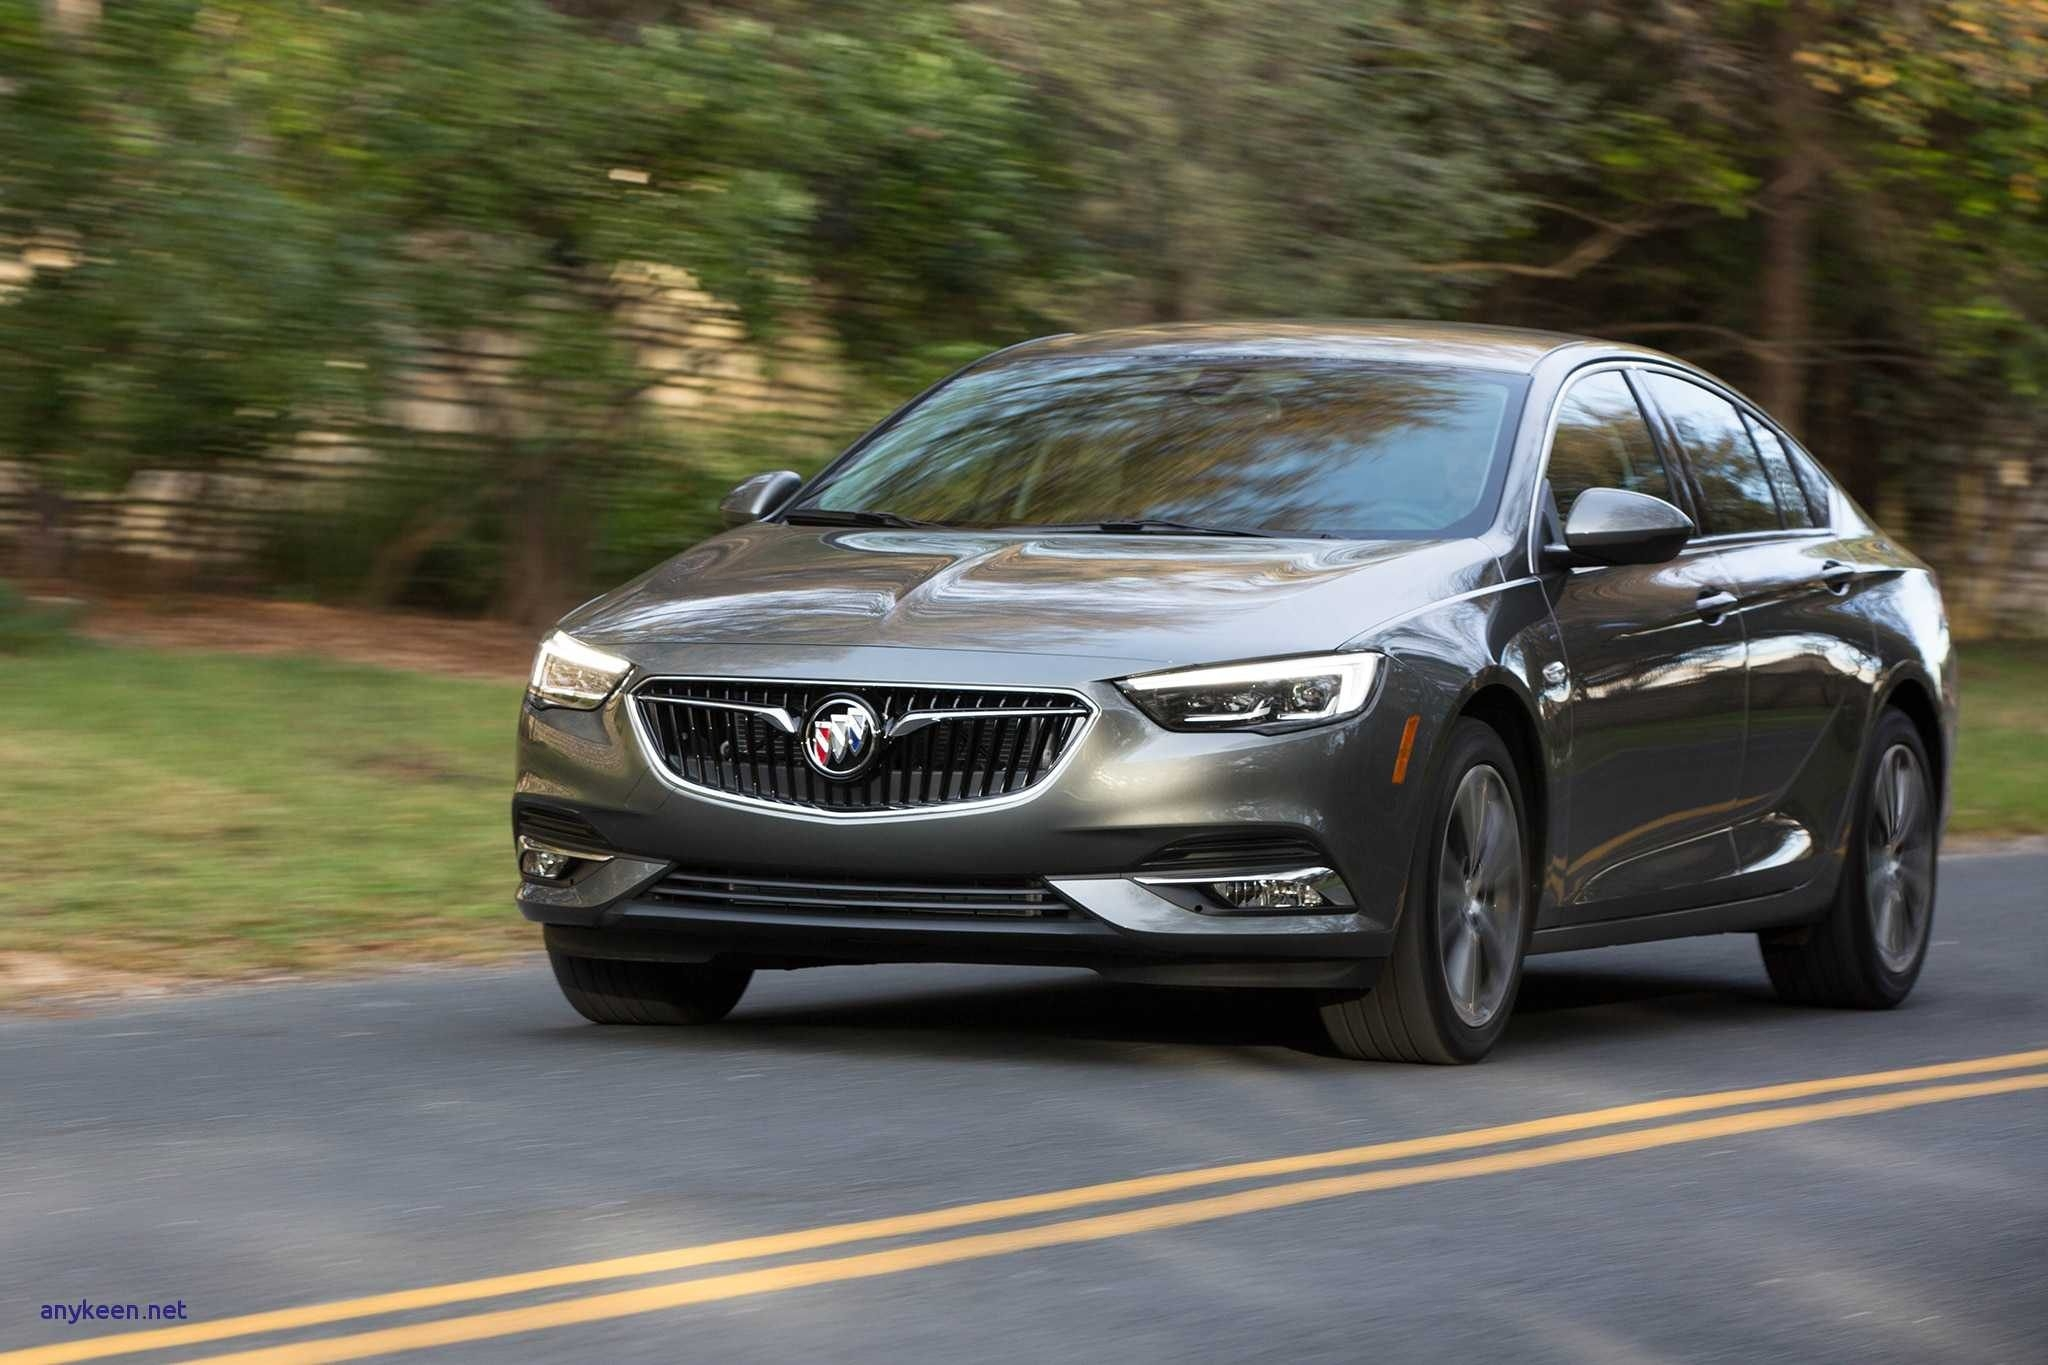 78 All New 2019 Buick Park Avenue Concept